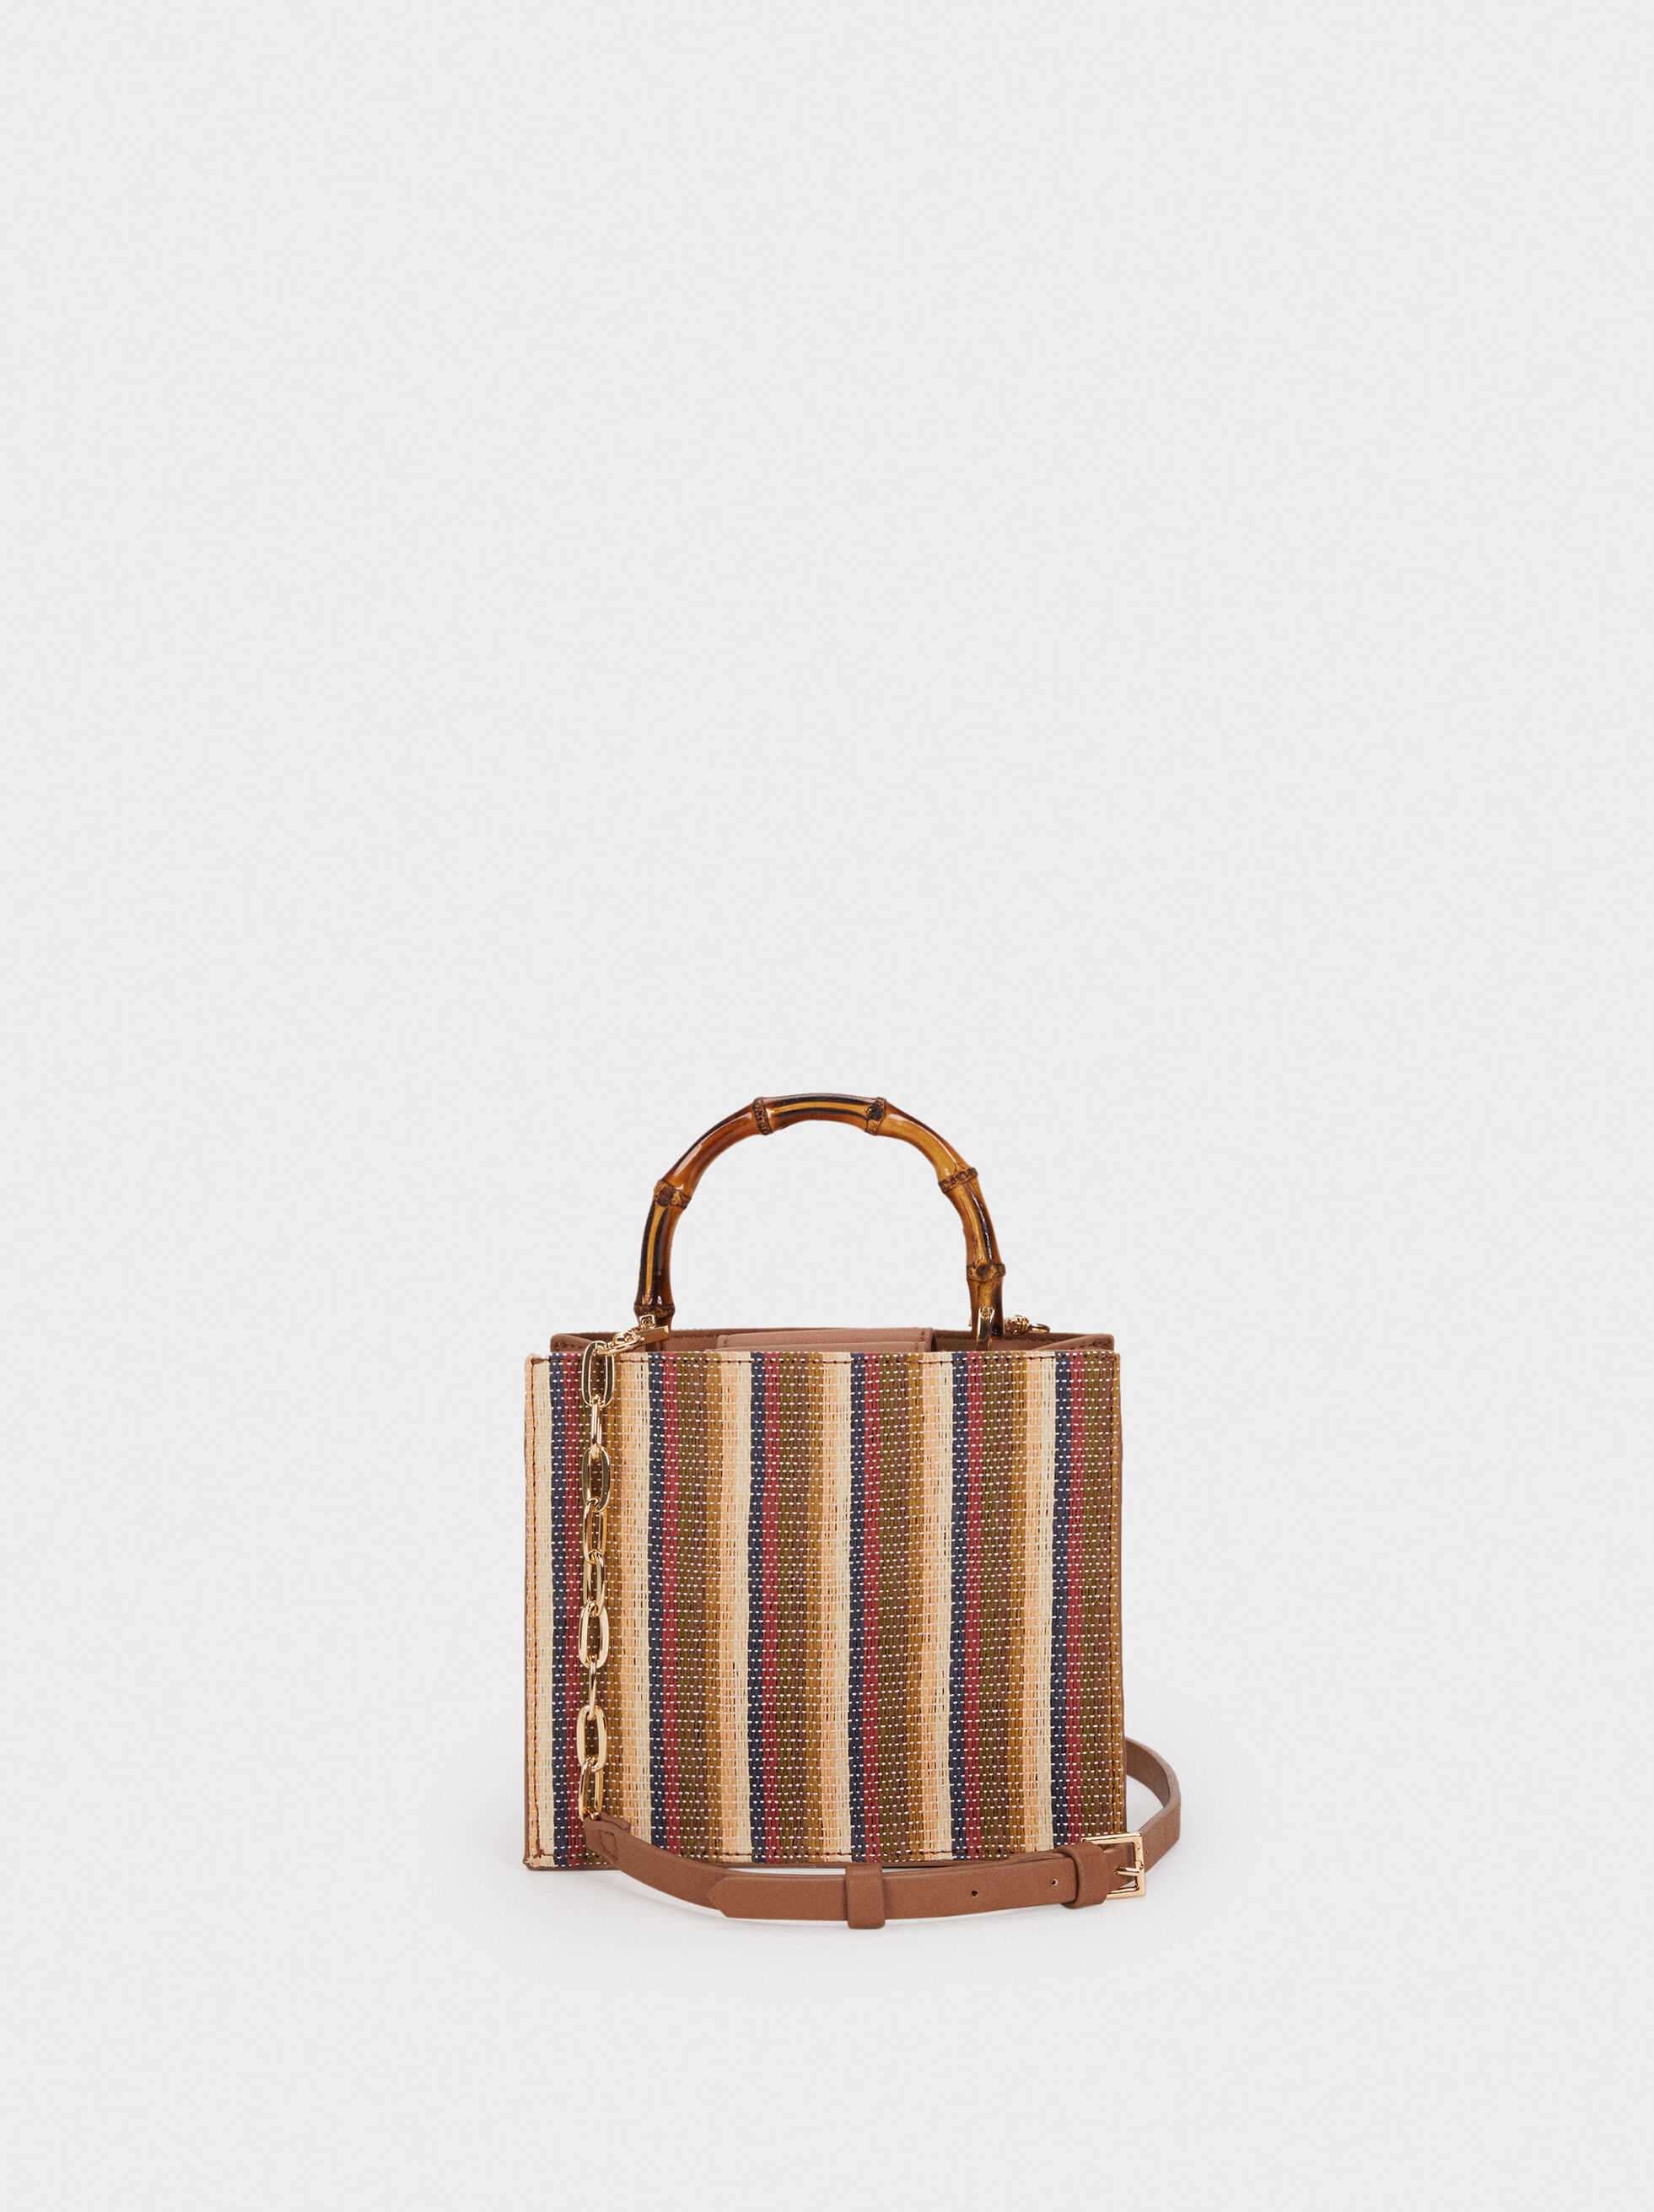 Clutch With Bamboo Strap, Beige, hi-res